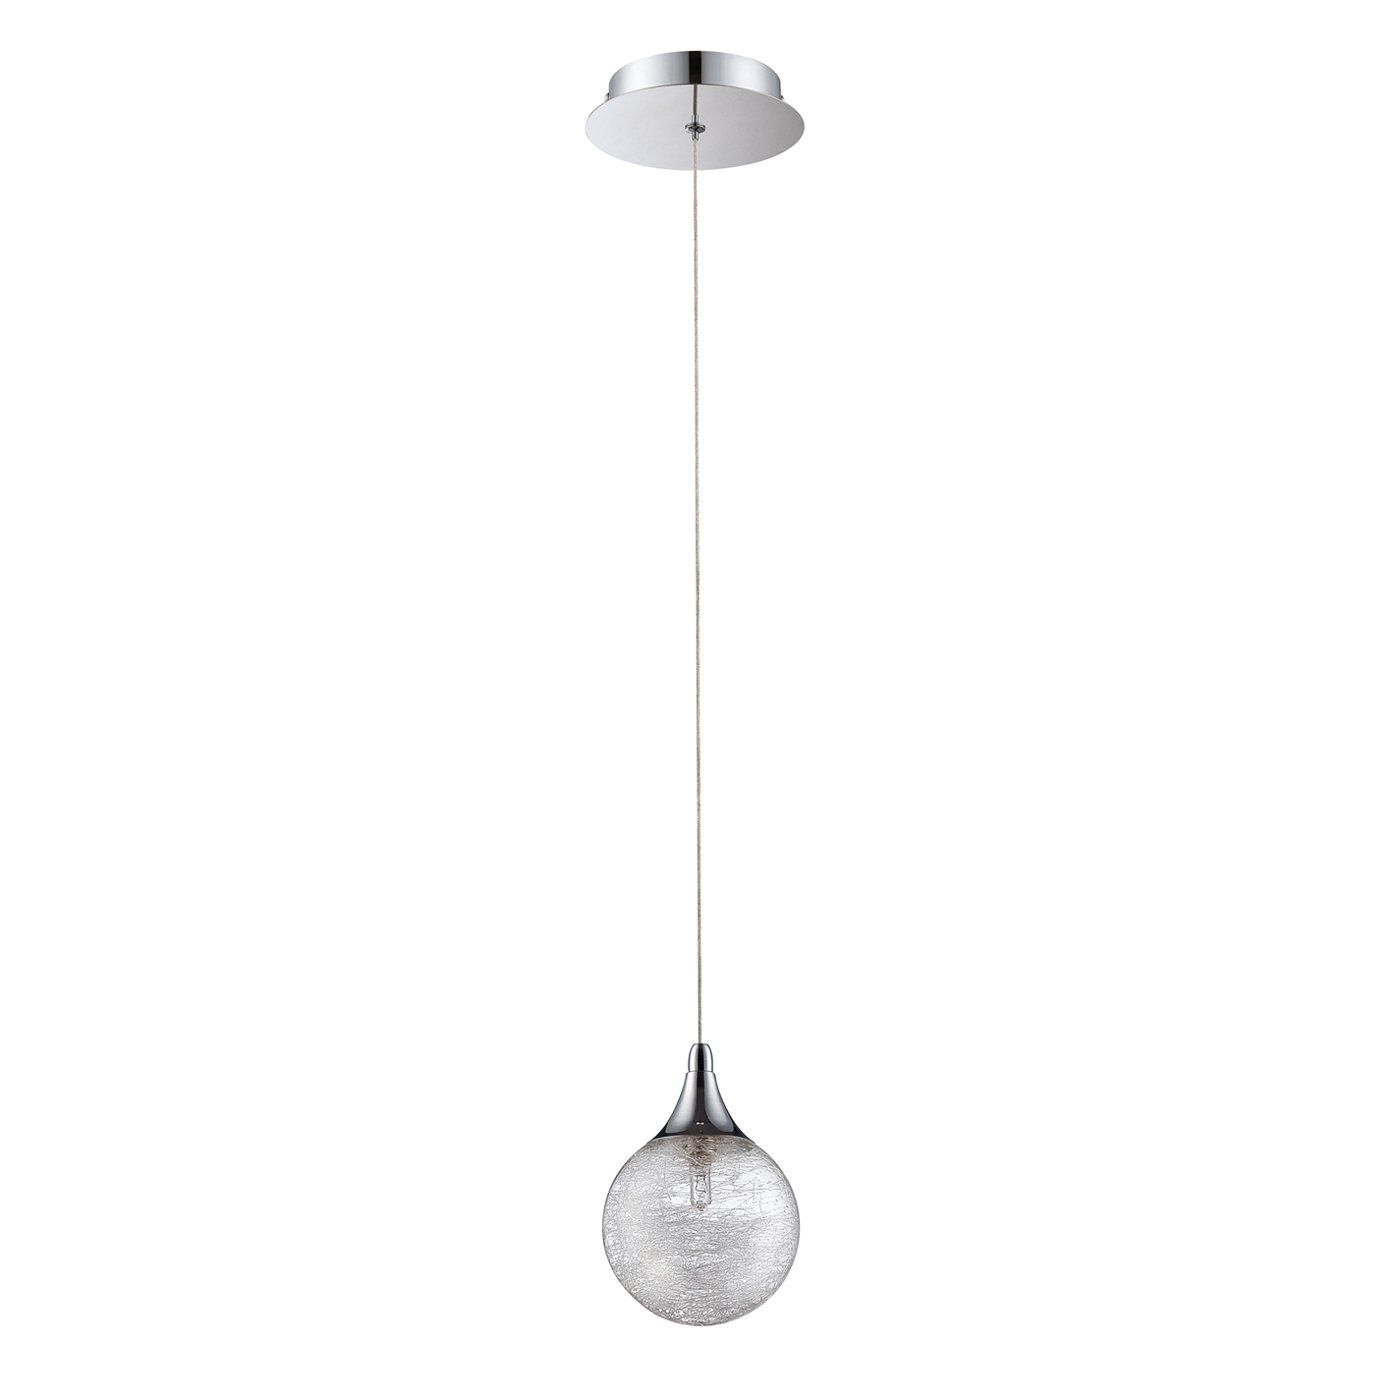 Photo Album Website Shop Kendal Lighting PF LPE CH Pendant Light at Lowe us Canada Find our